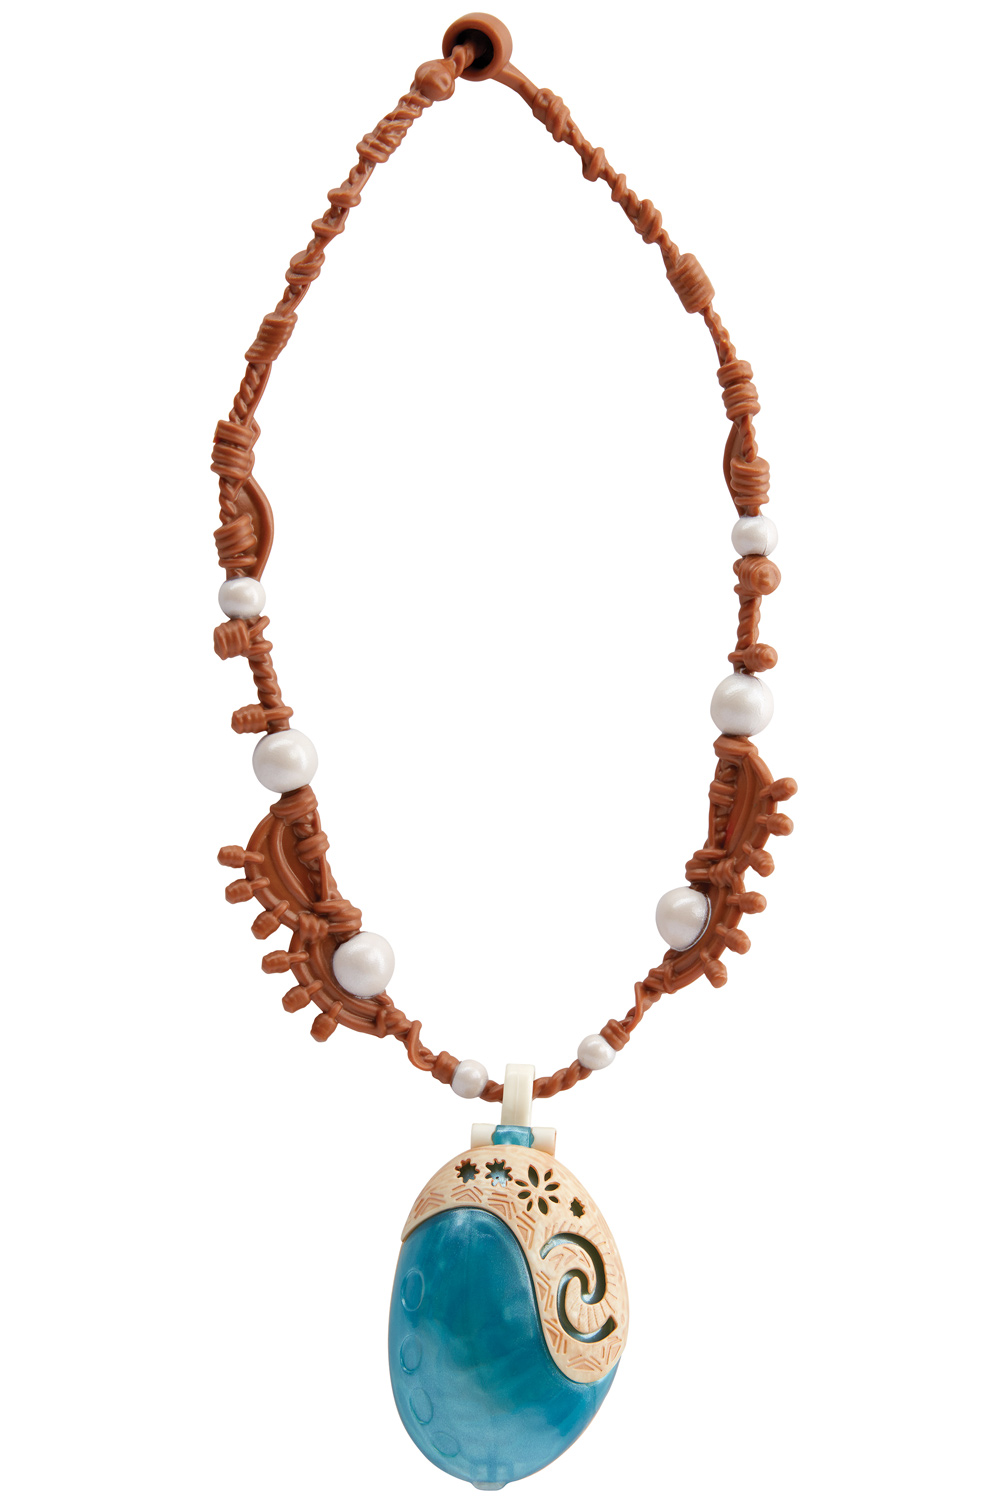 Moana S Necklace Purecostumes Com